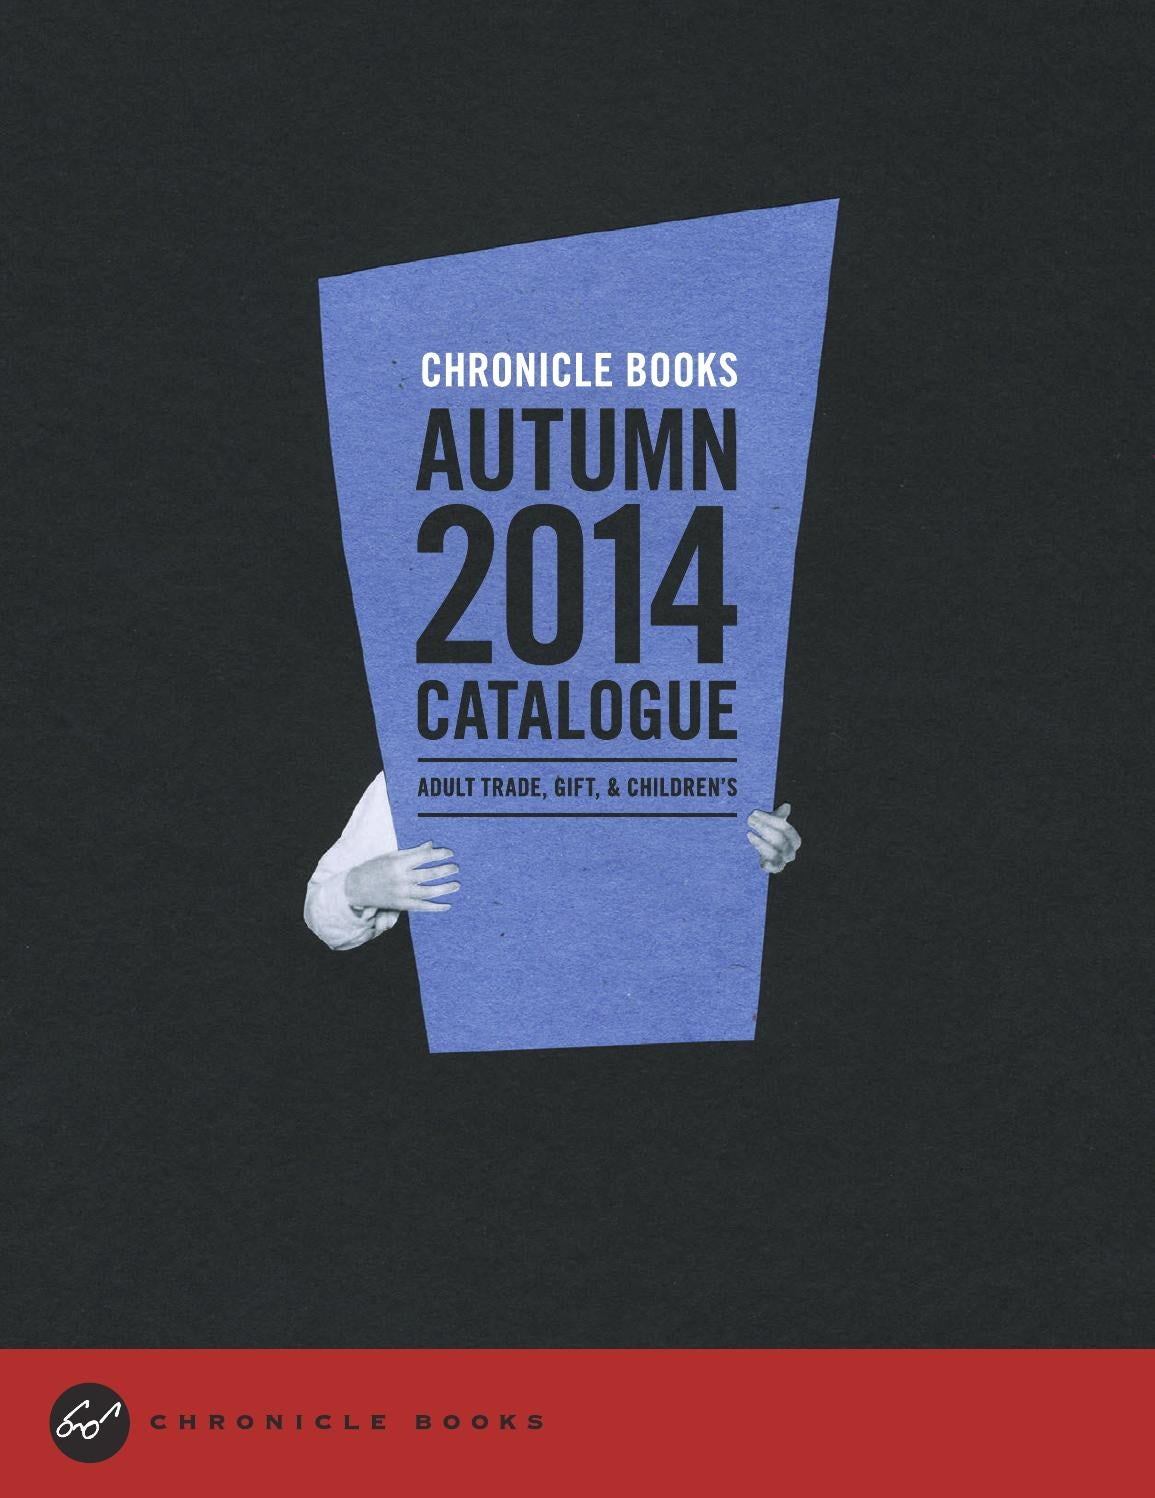 Chronicle Books Autumn 2014 Catalogue by Abrams&ChronicleBooks - issuu